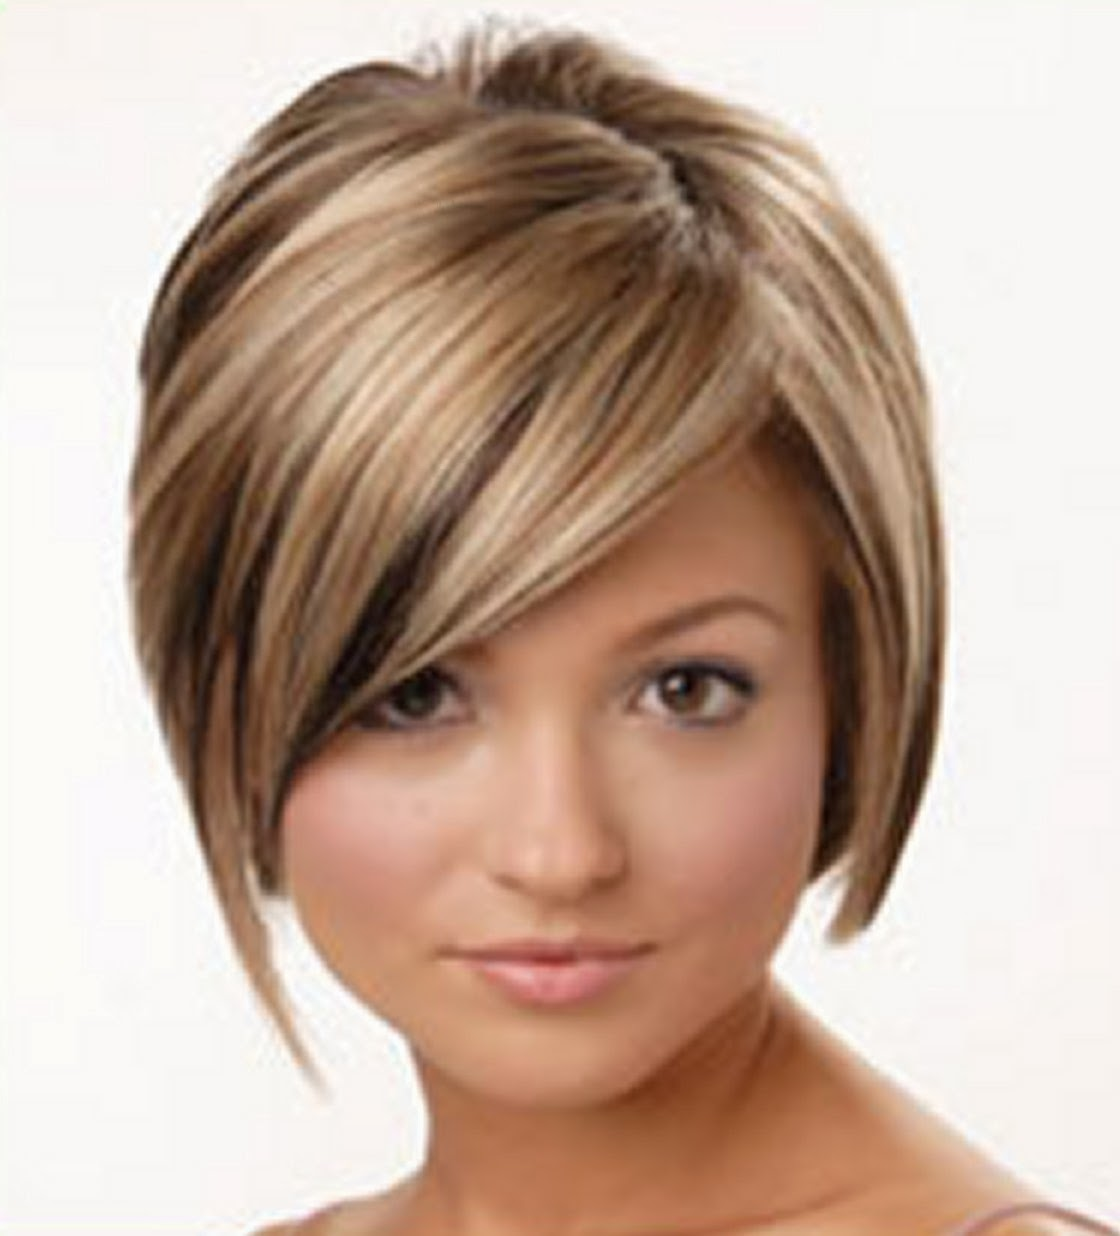 Original 20 Haircuts For Short Fine Hair  Short Hairstyles 2016  2017  Most